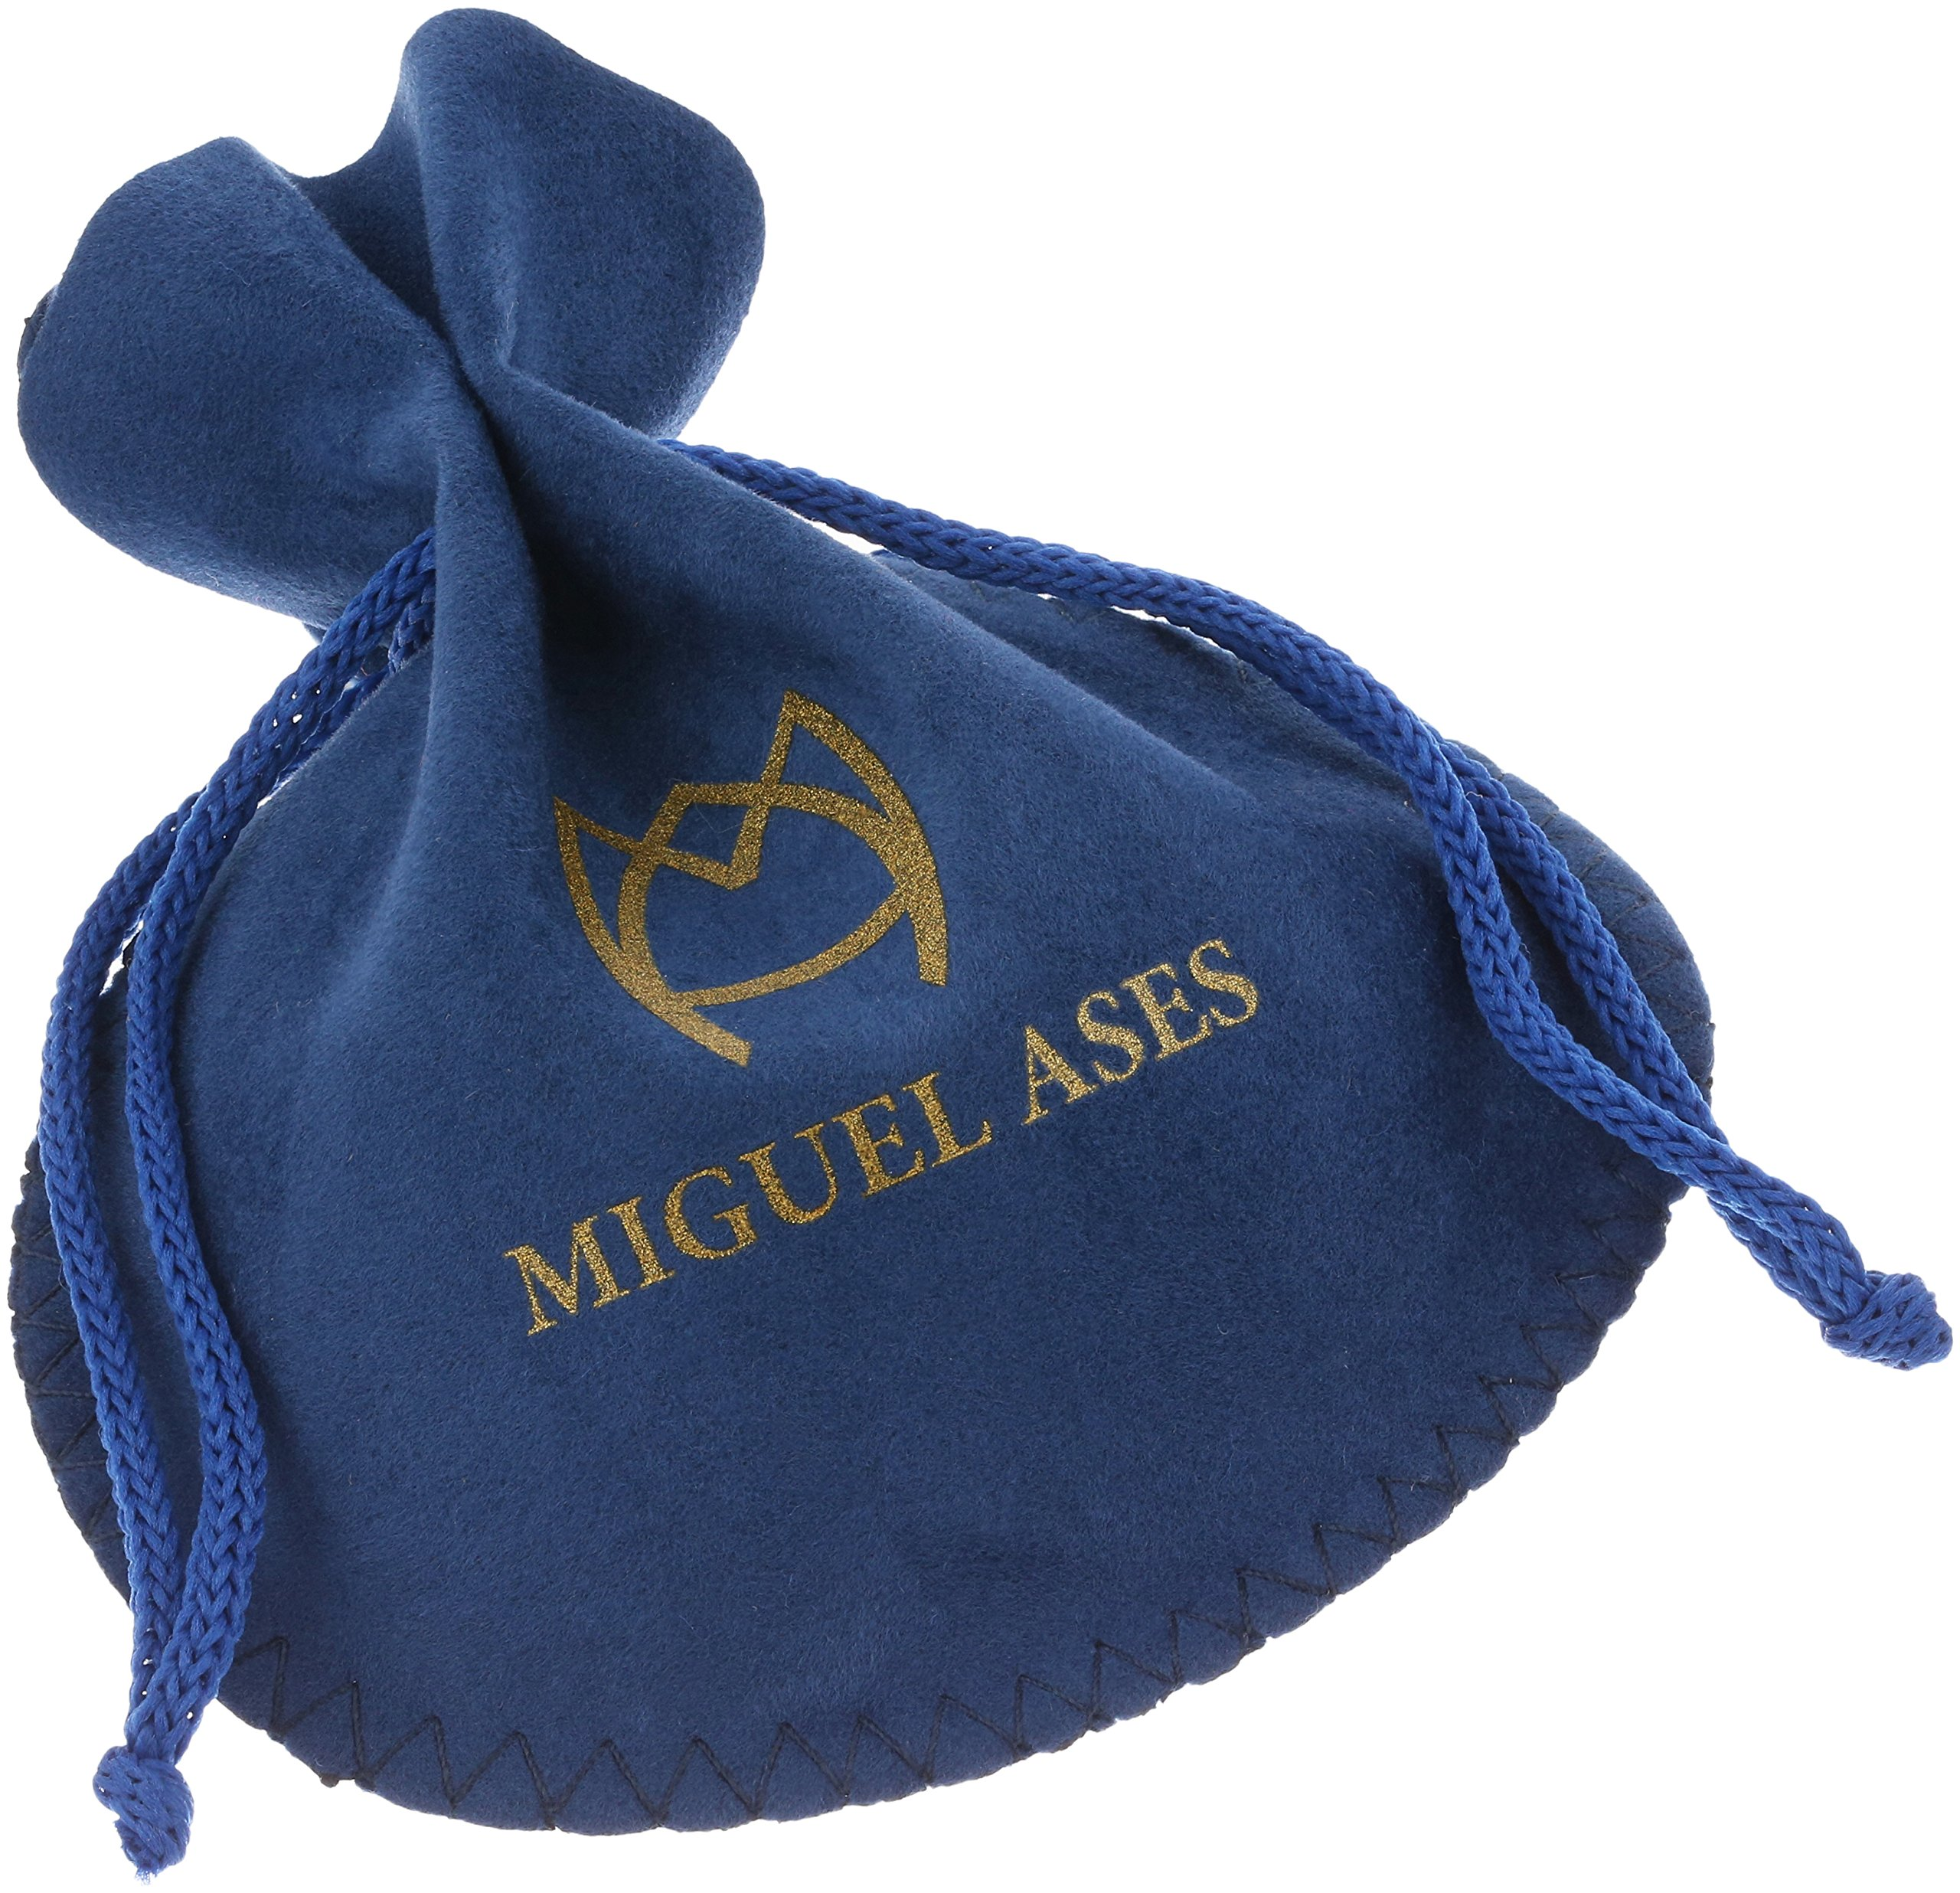 Miguel Ases Vertical Linear Fleur Petals Swarovski Cluster Post Drop Earrings, Egyptian Blue by Miguel Ases (Image #3)